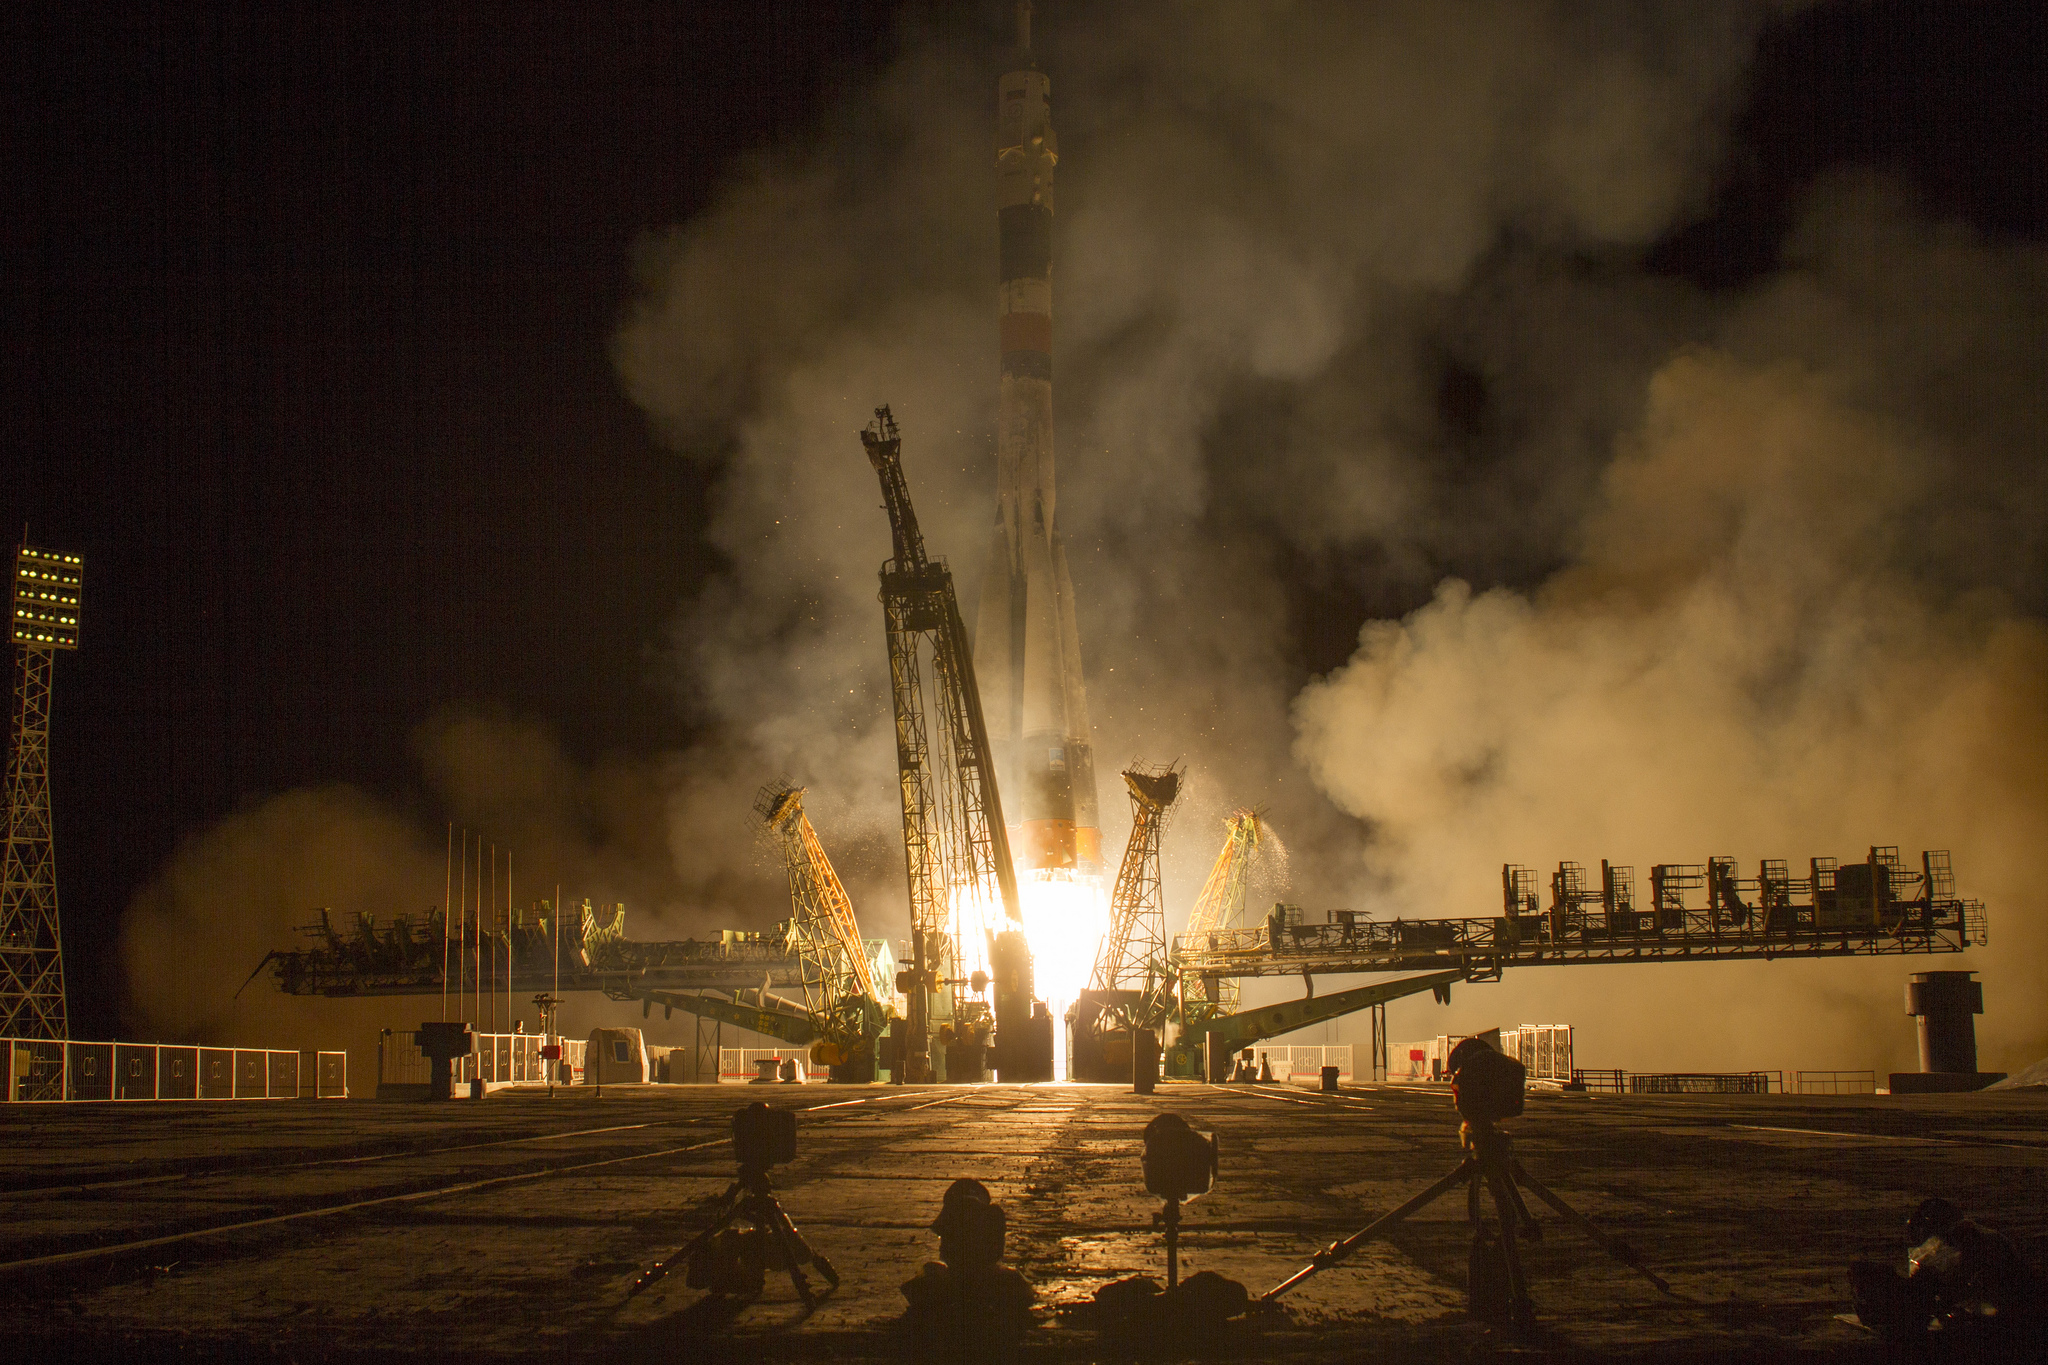 Soyuz Spacecraft Launches Expedition 37 Crew